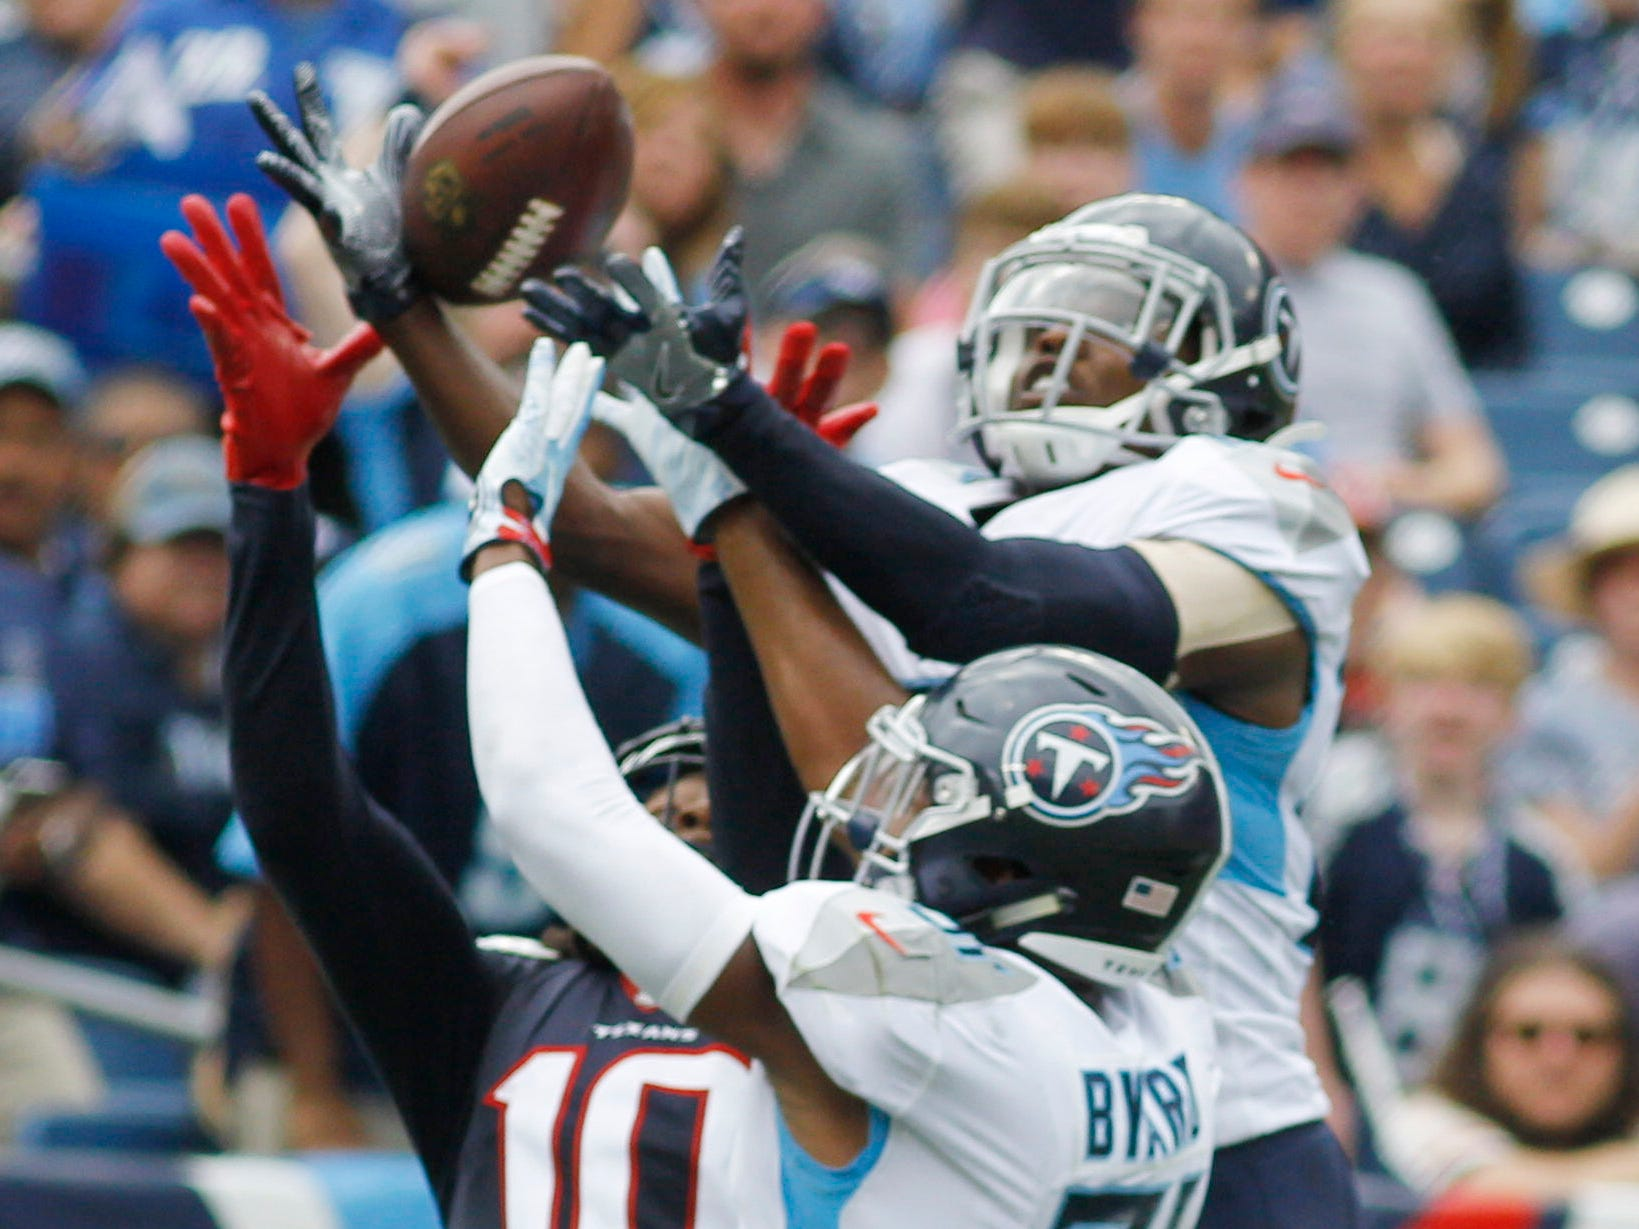 Titans cornerback Adoree' Jackson (25) goes up to grab an interception of a pass intended for Texans wide receiver DeAndre Hopkins (10) in the second quarter at Nissan Stadium Sunday, Sept. 16, 2018, in Nashville, Tenn.